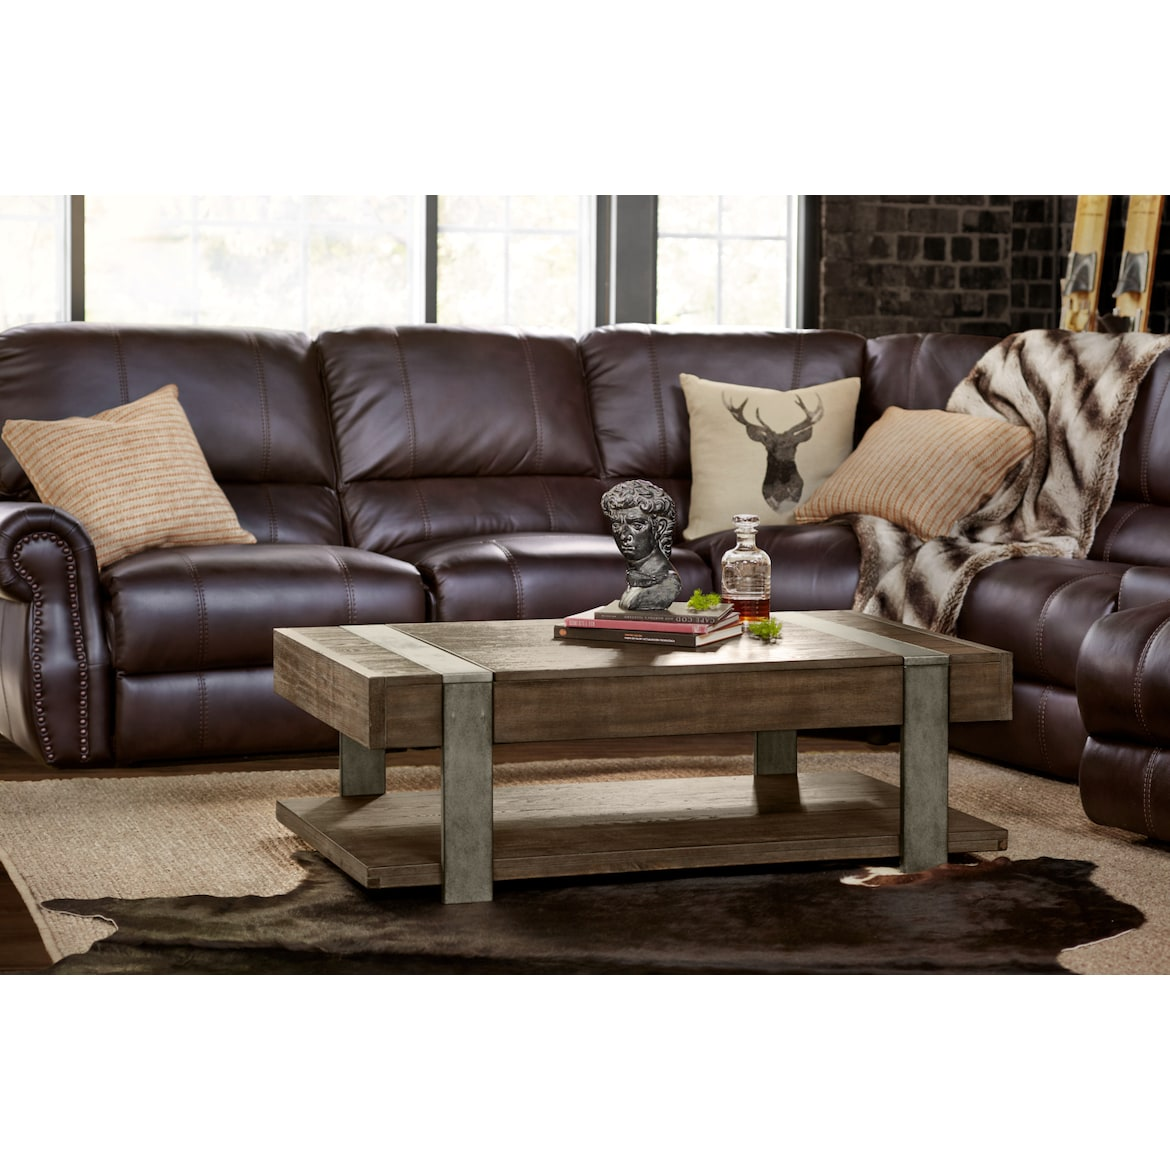 Union City Lift Top Coffee Table American Signature